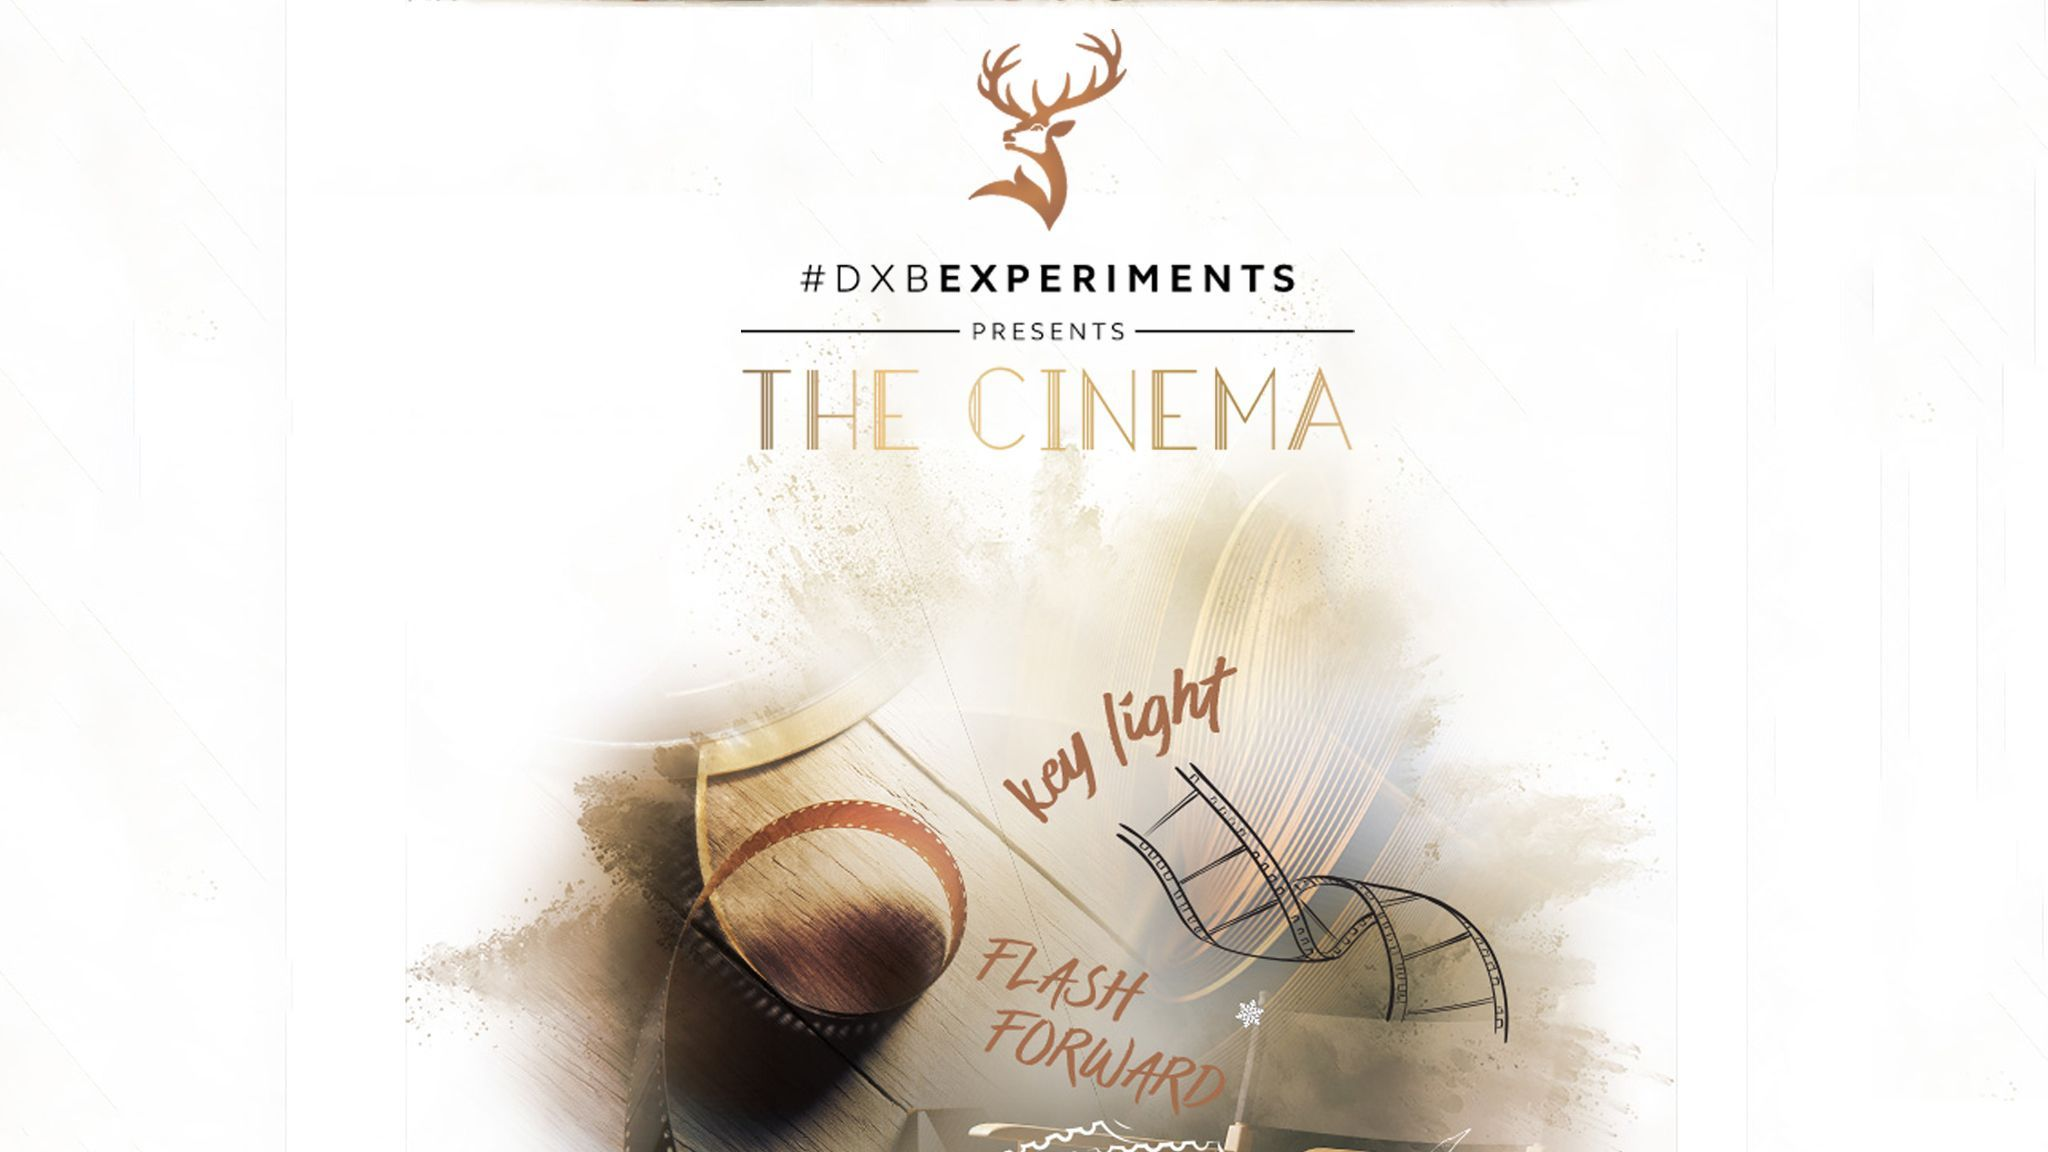 #DXBExperiments presents The Cinema with Maya